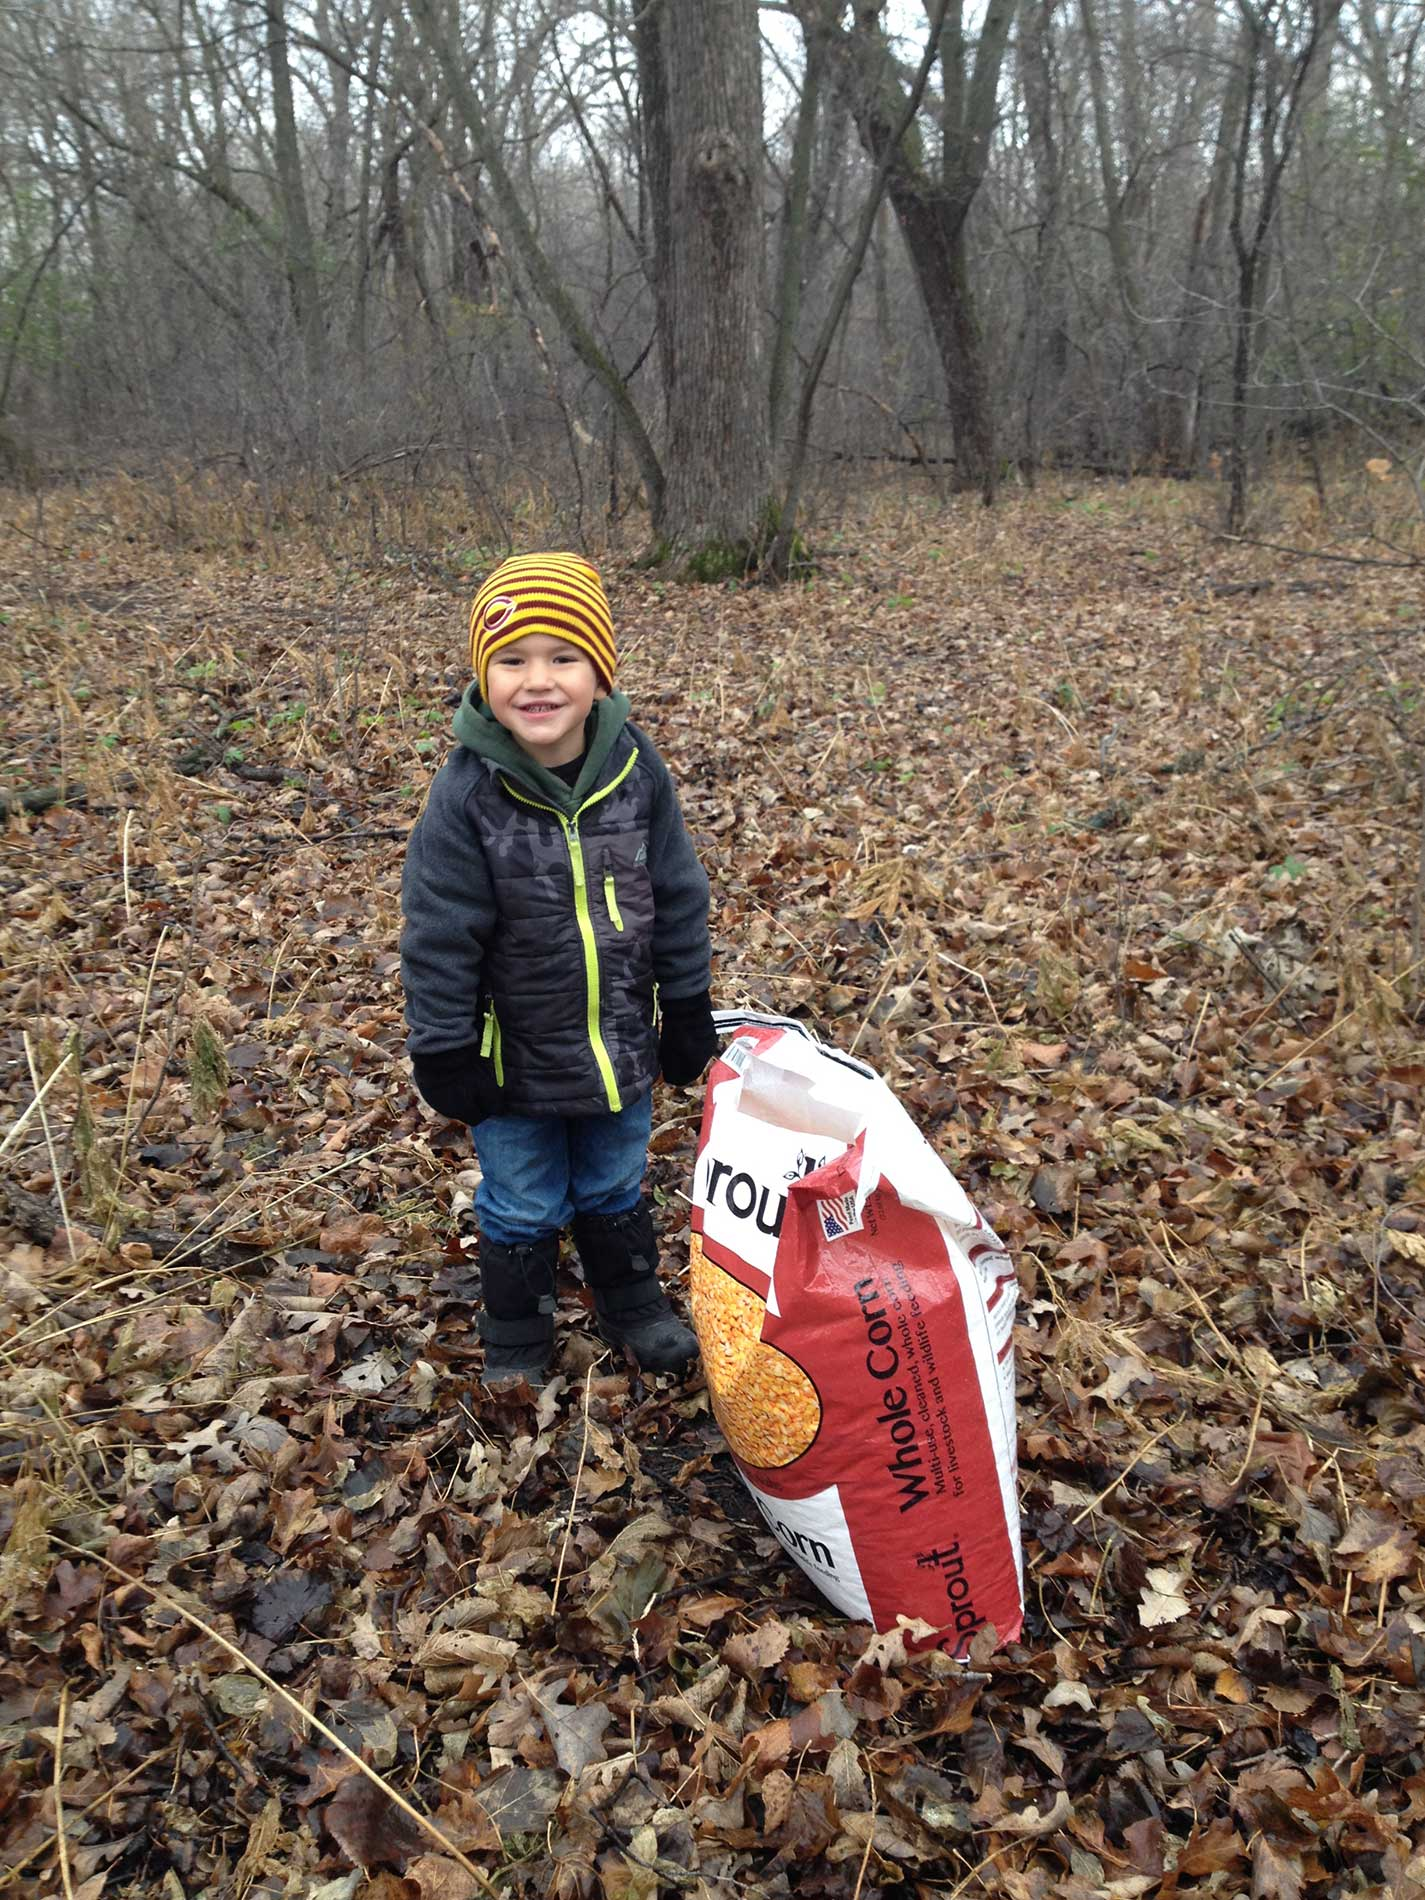 Reese helping me put corn our for the deer and turkeys